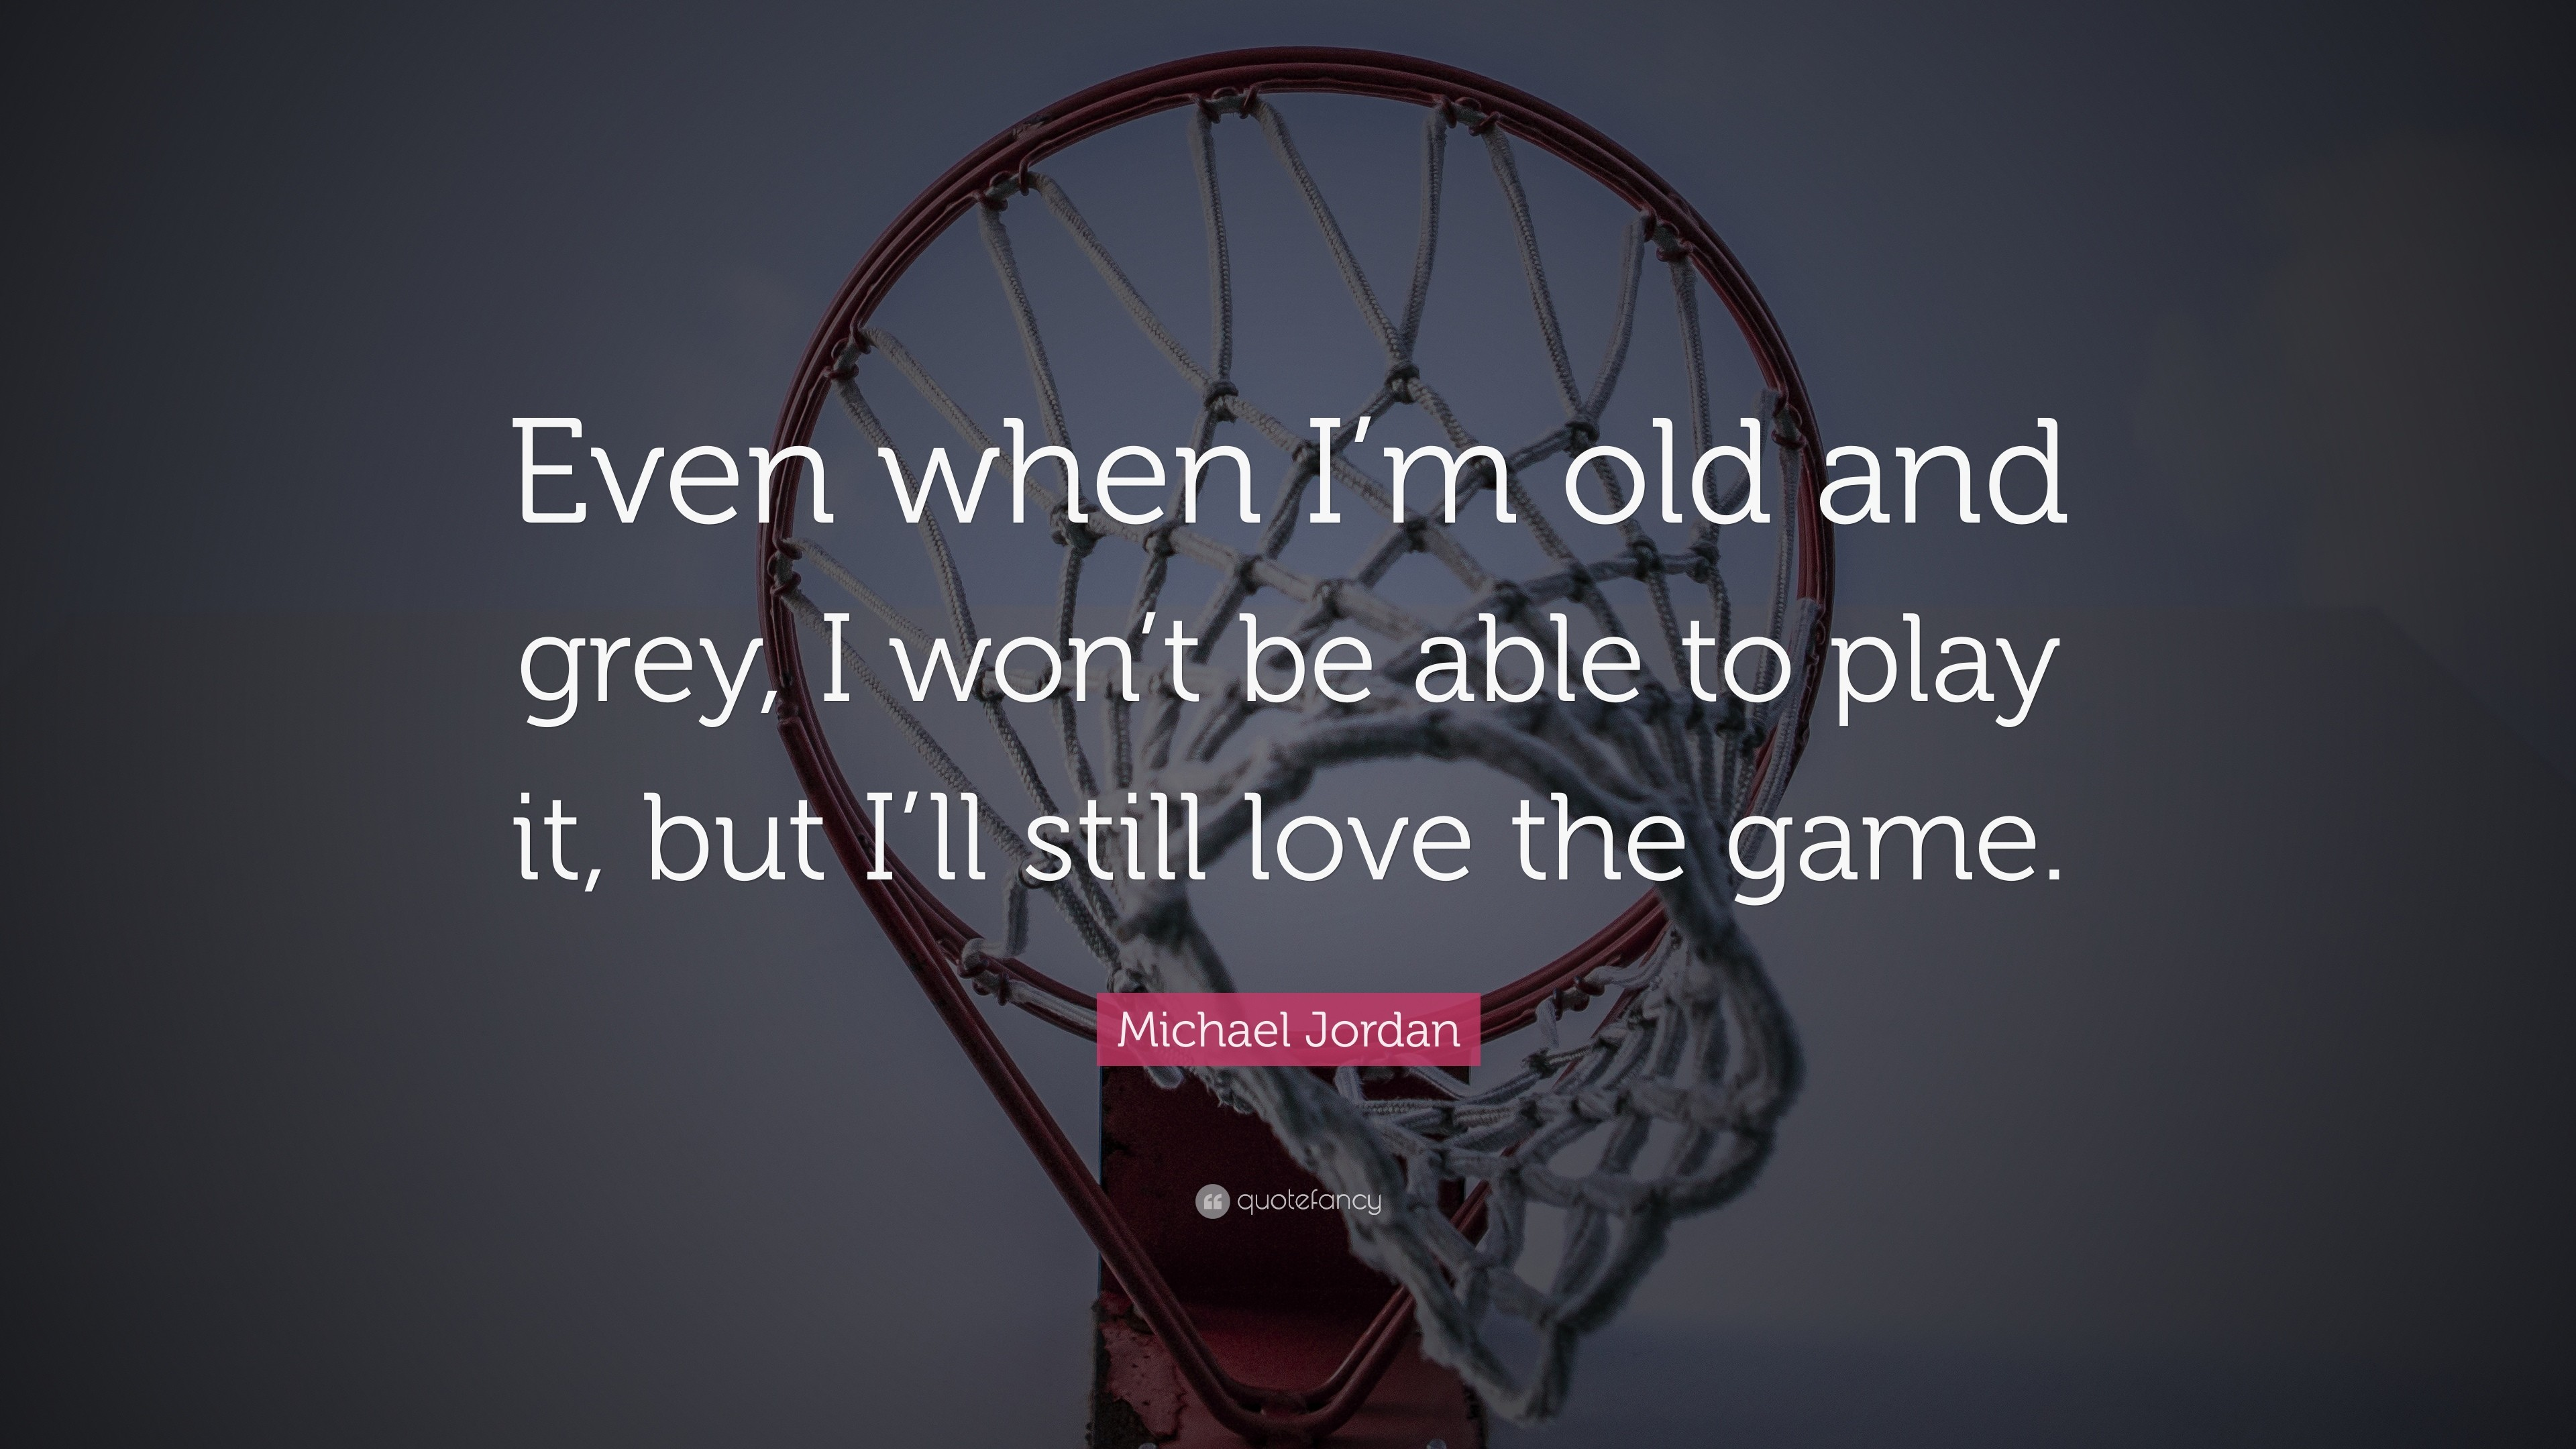 … basketball quotes 40 wallpapers quotefancy …